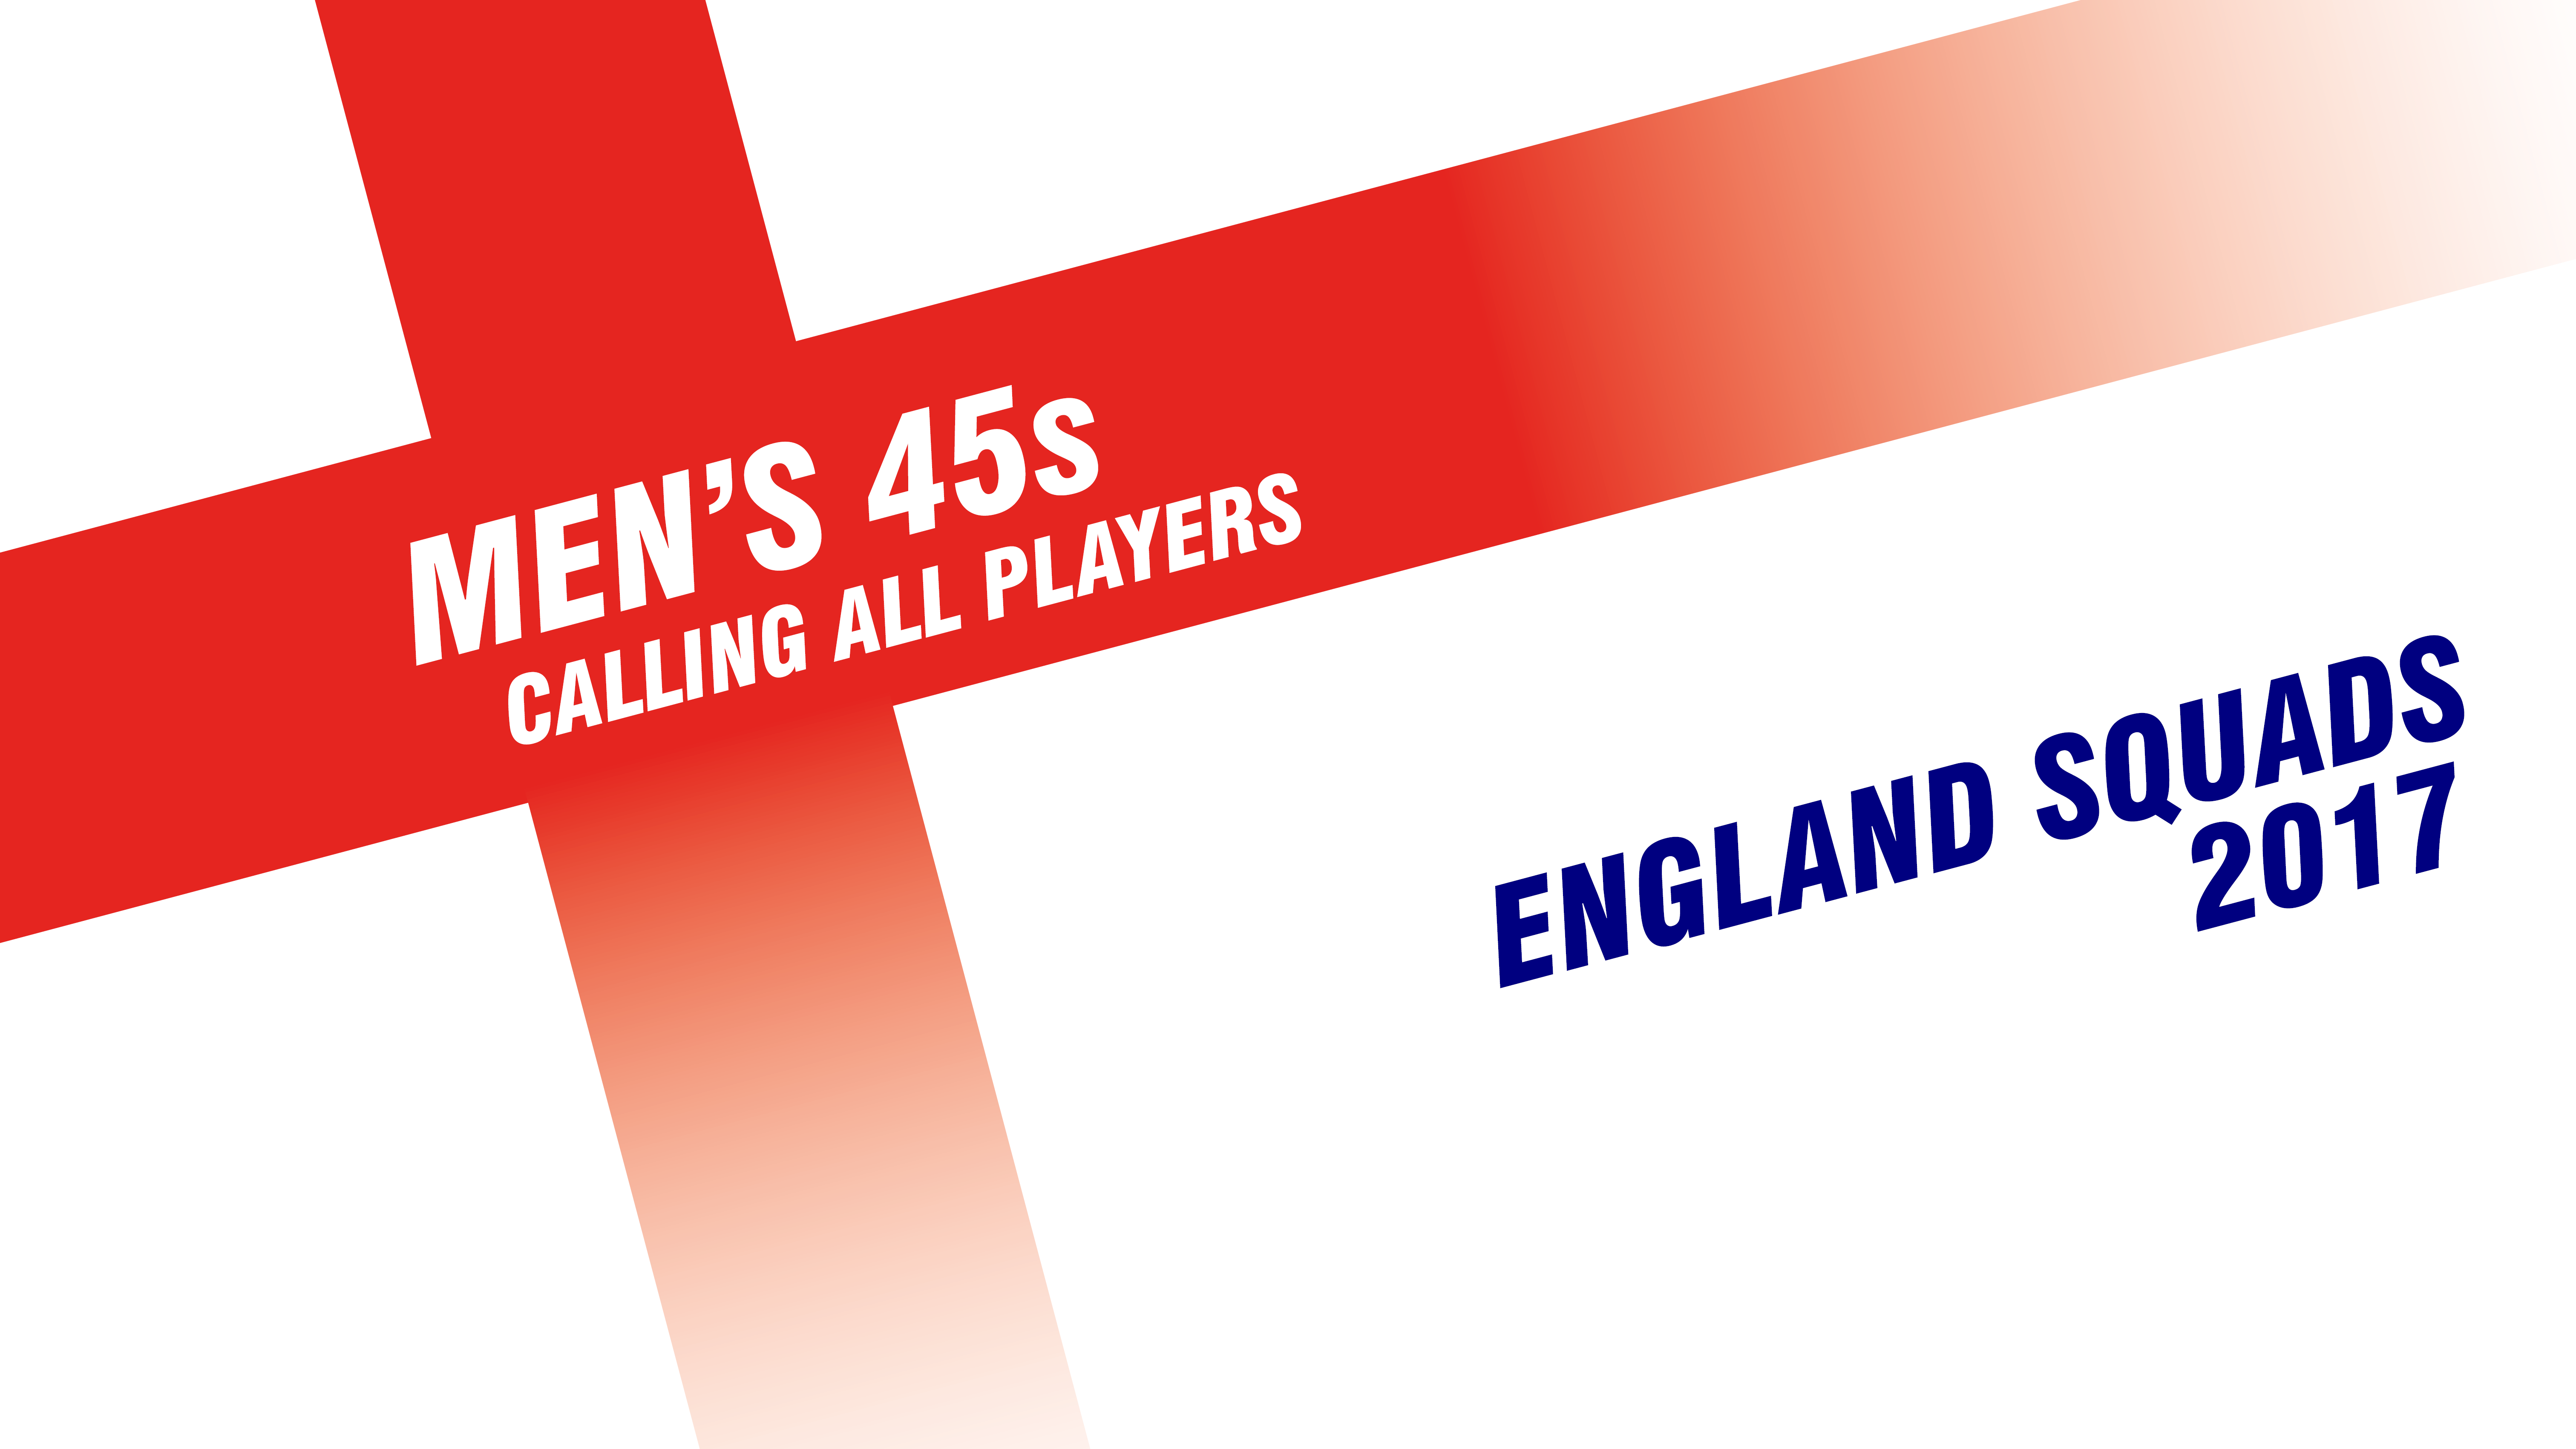 England Men's 45s | An update for 2017